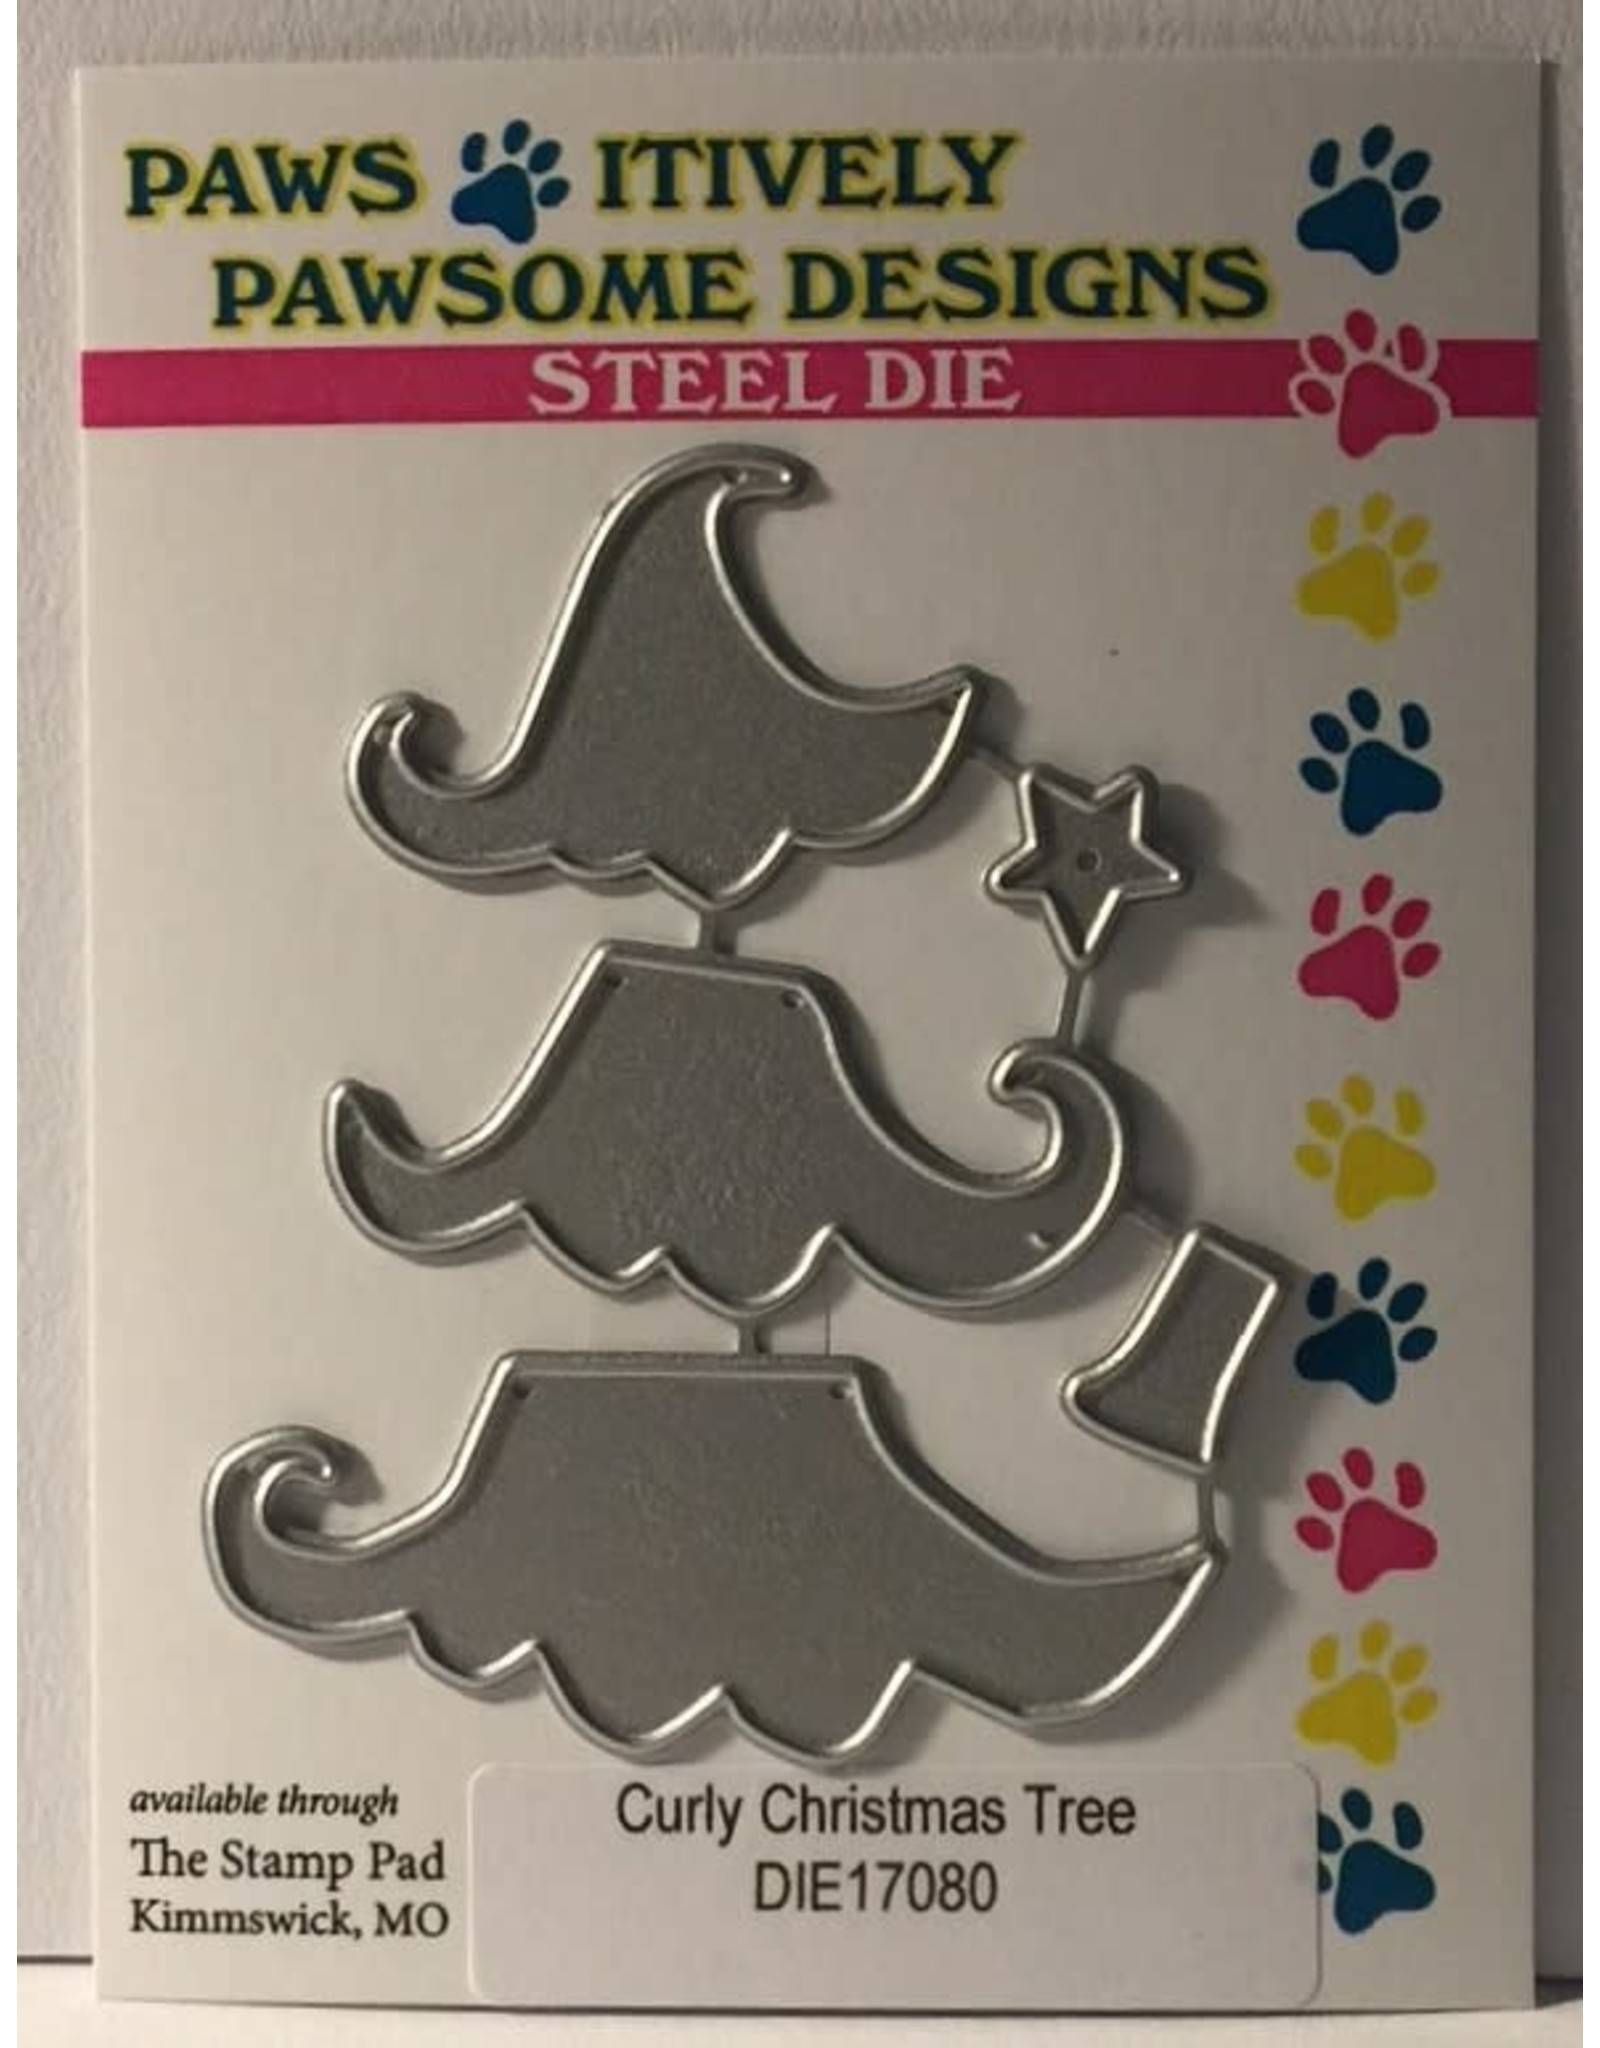 Paws-Itively Pawsome Designs Curly Christmas Tree - Die